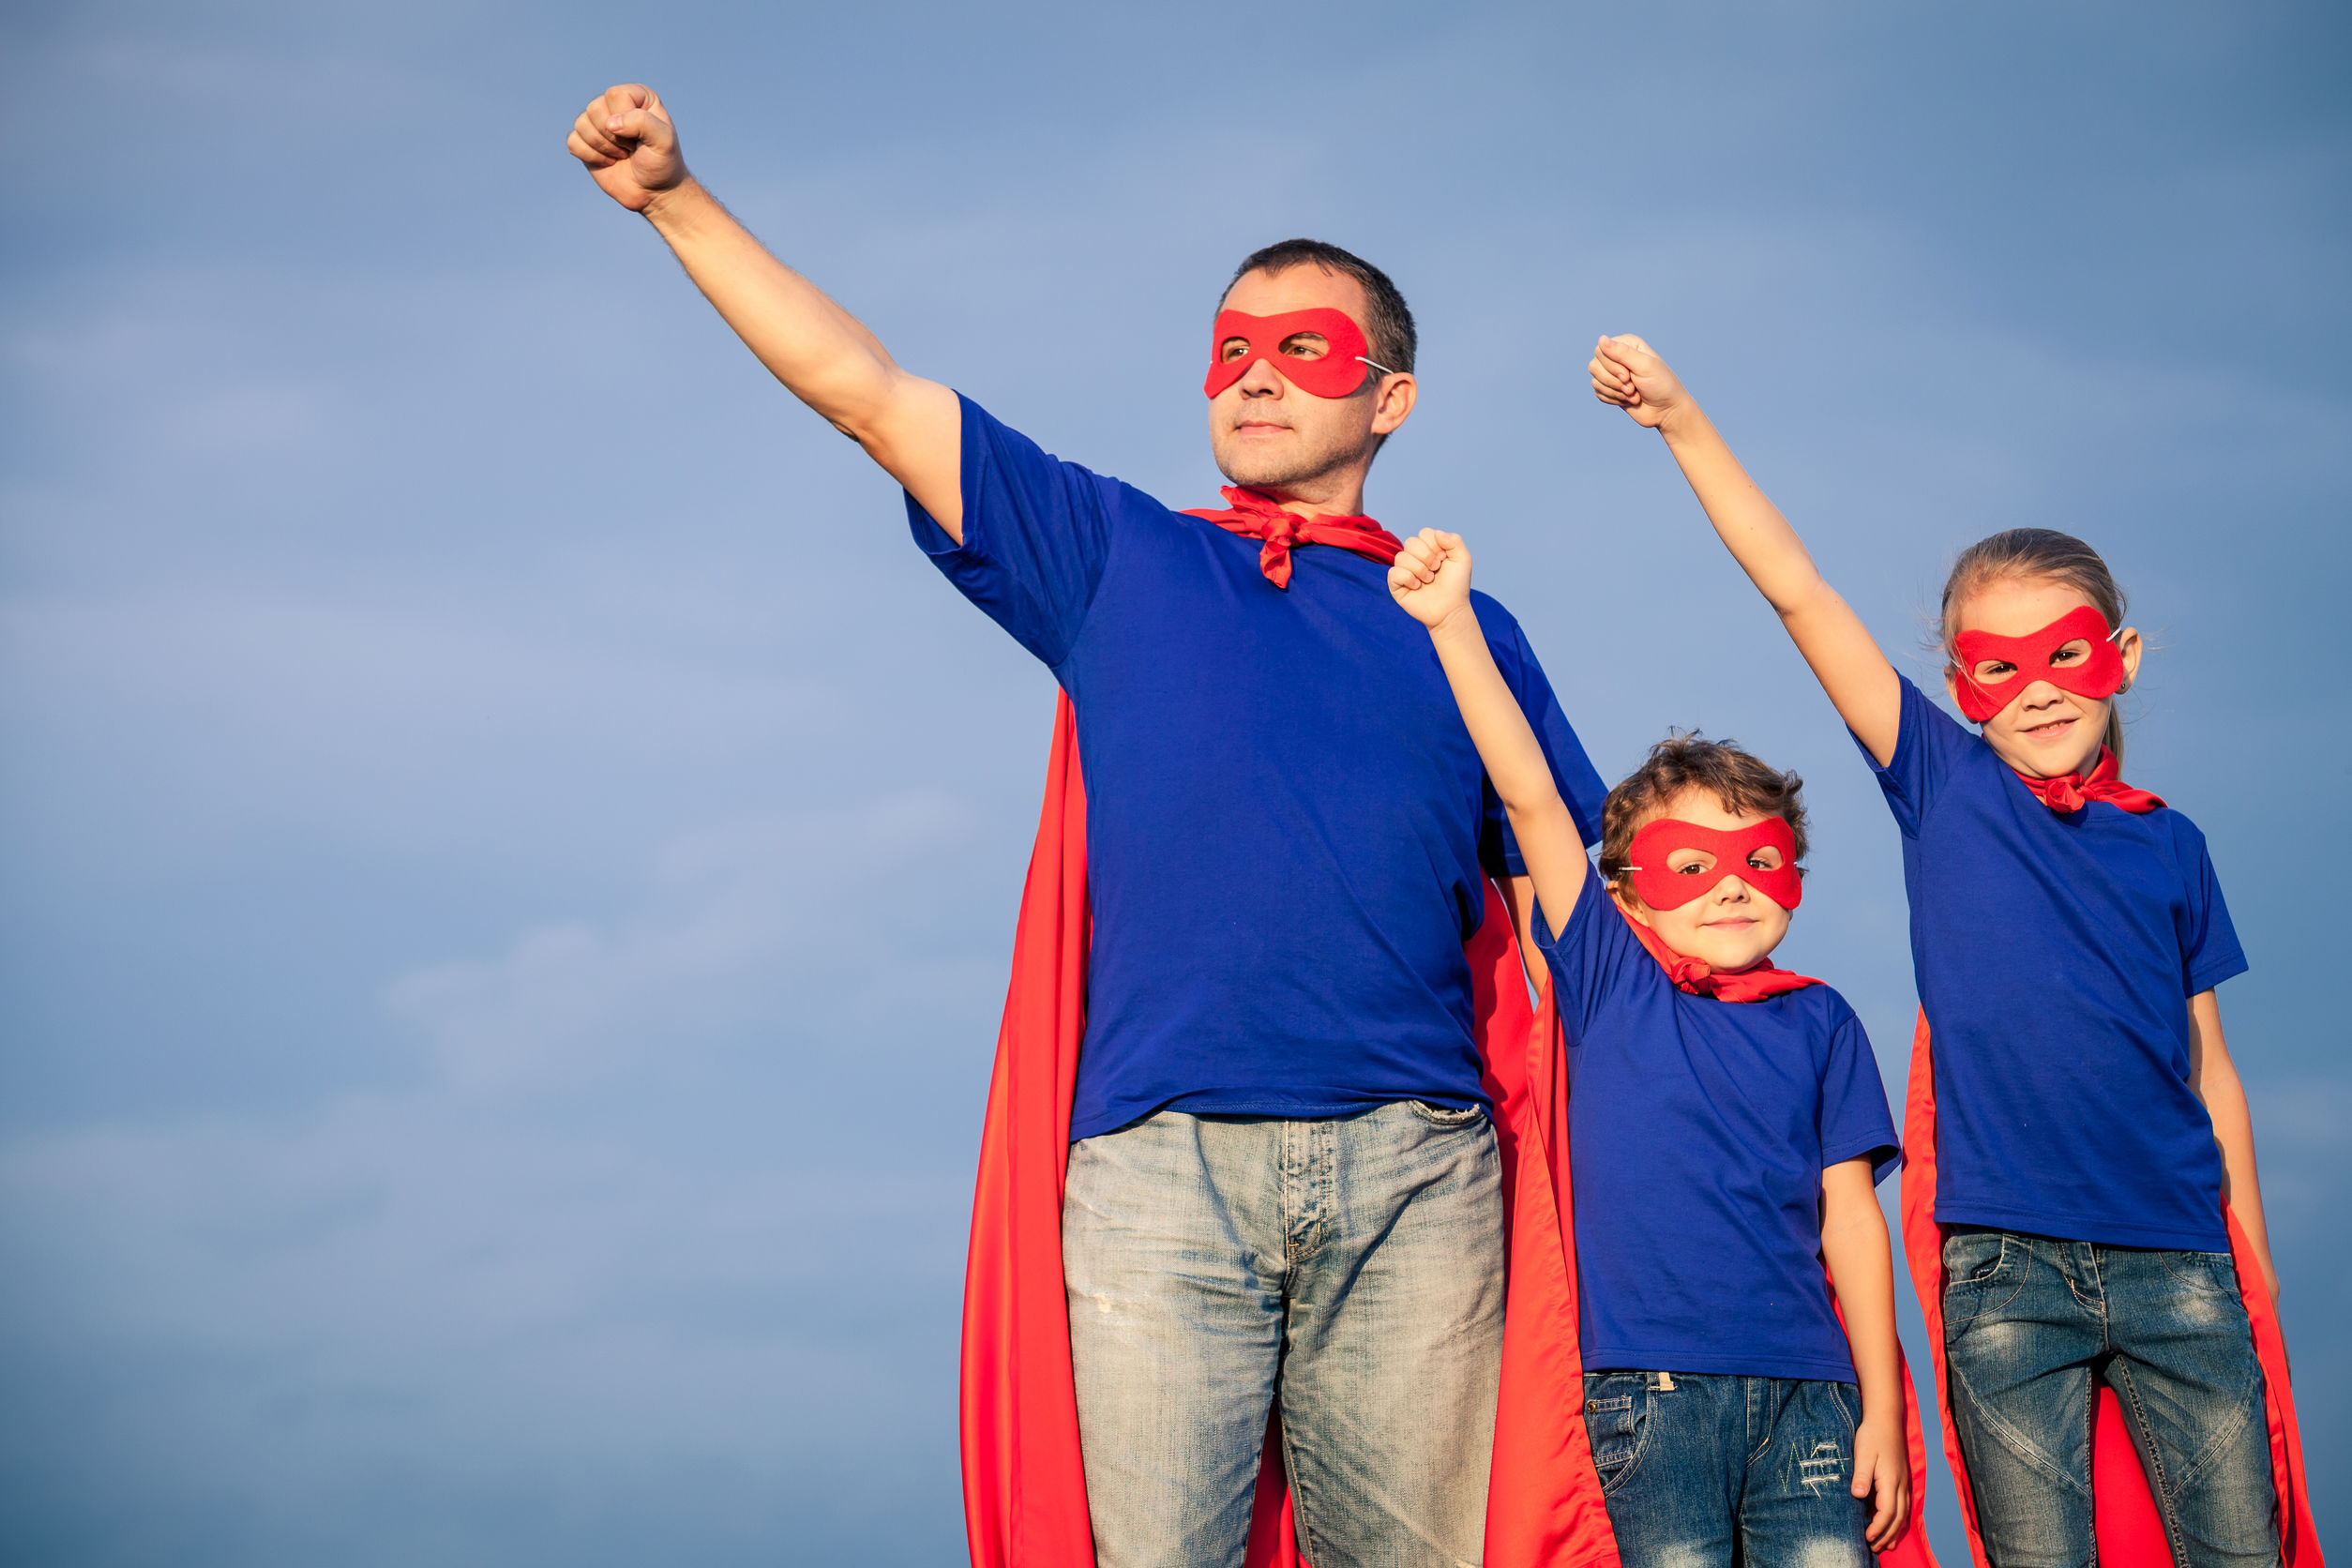 Stock Photo - Father and children playing superhero at the day time. People having fun outdoors. Concept of friendly family.